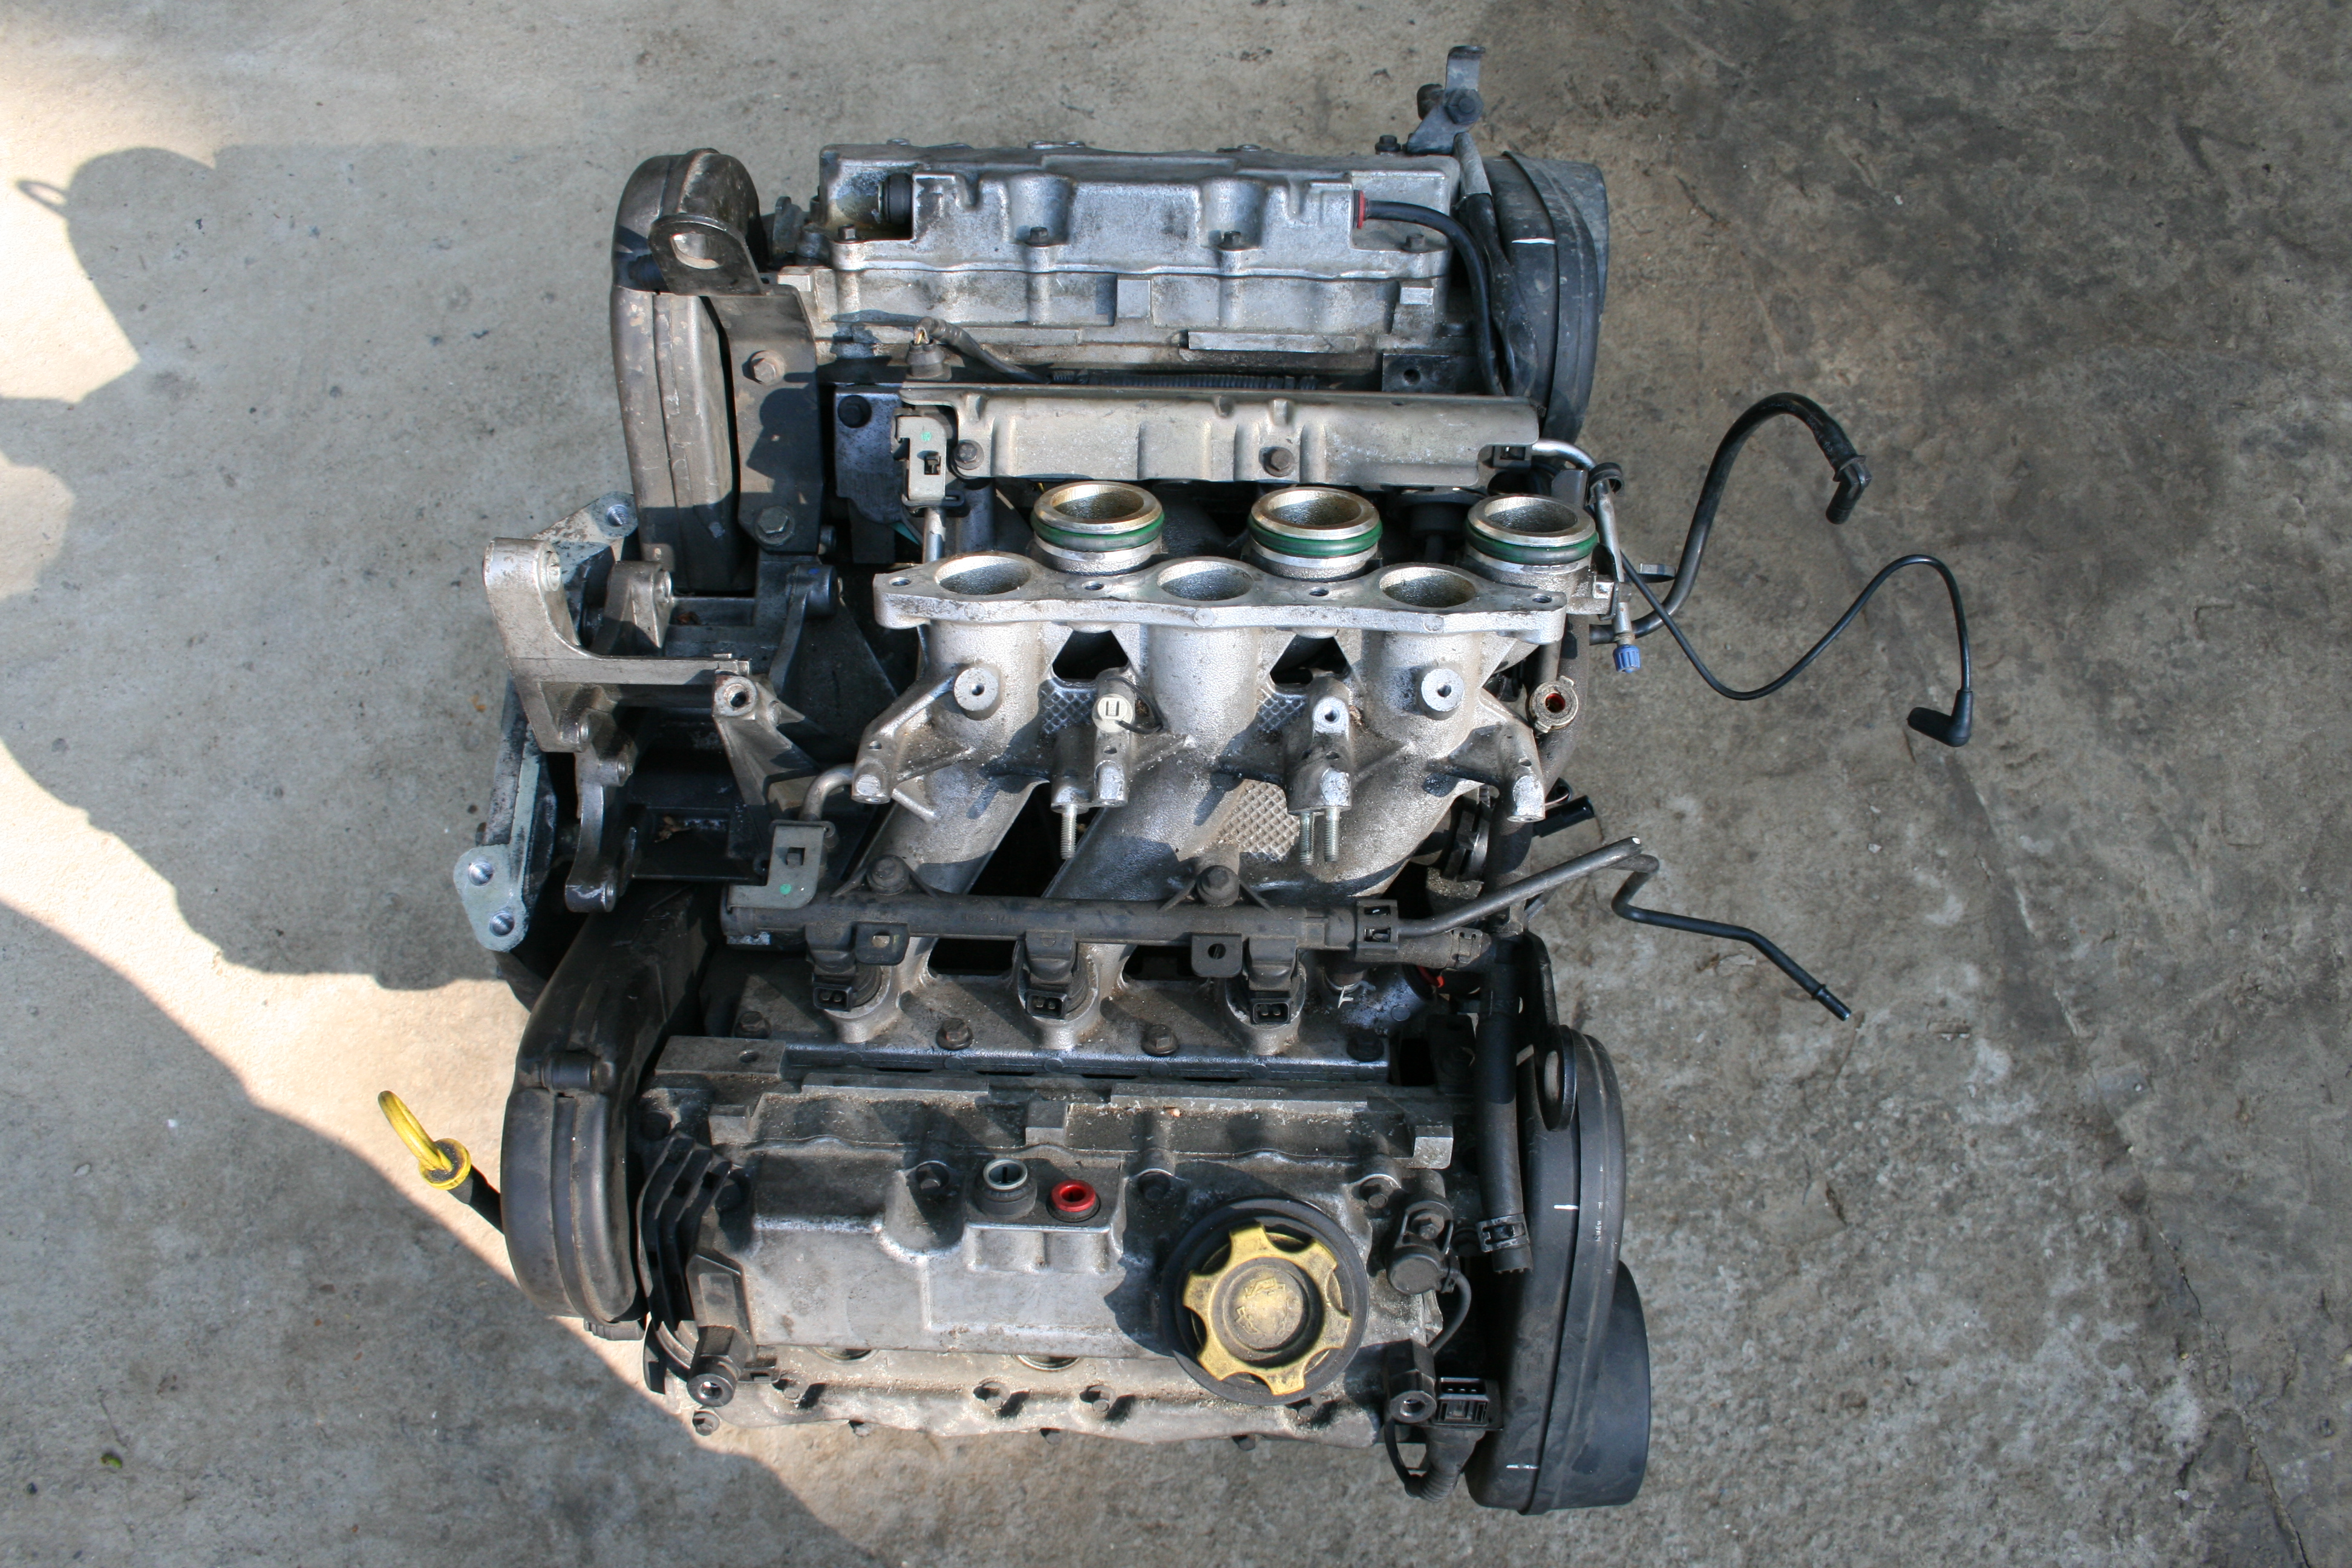 2002 Land Rover Freelander Engine Diagram Schematics Wiring Data \u2022 2001  Land Rover Discovery Engine Diagram 2 5 Land Rover Motor Diagram